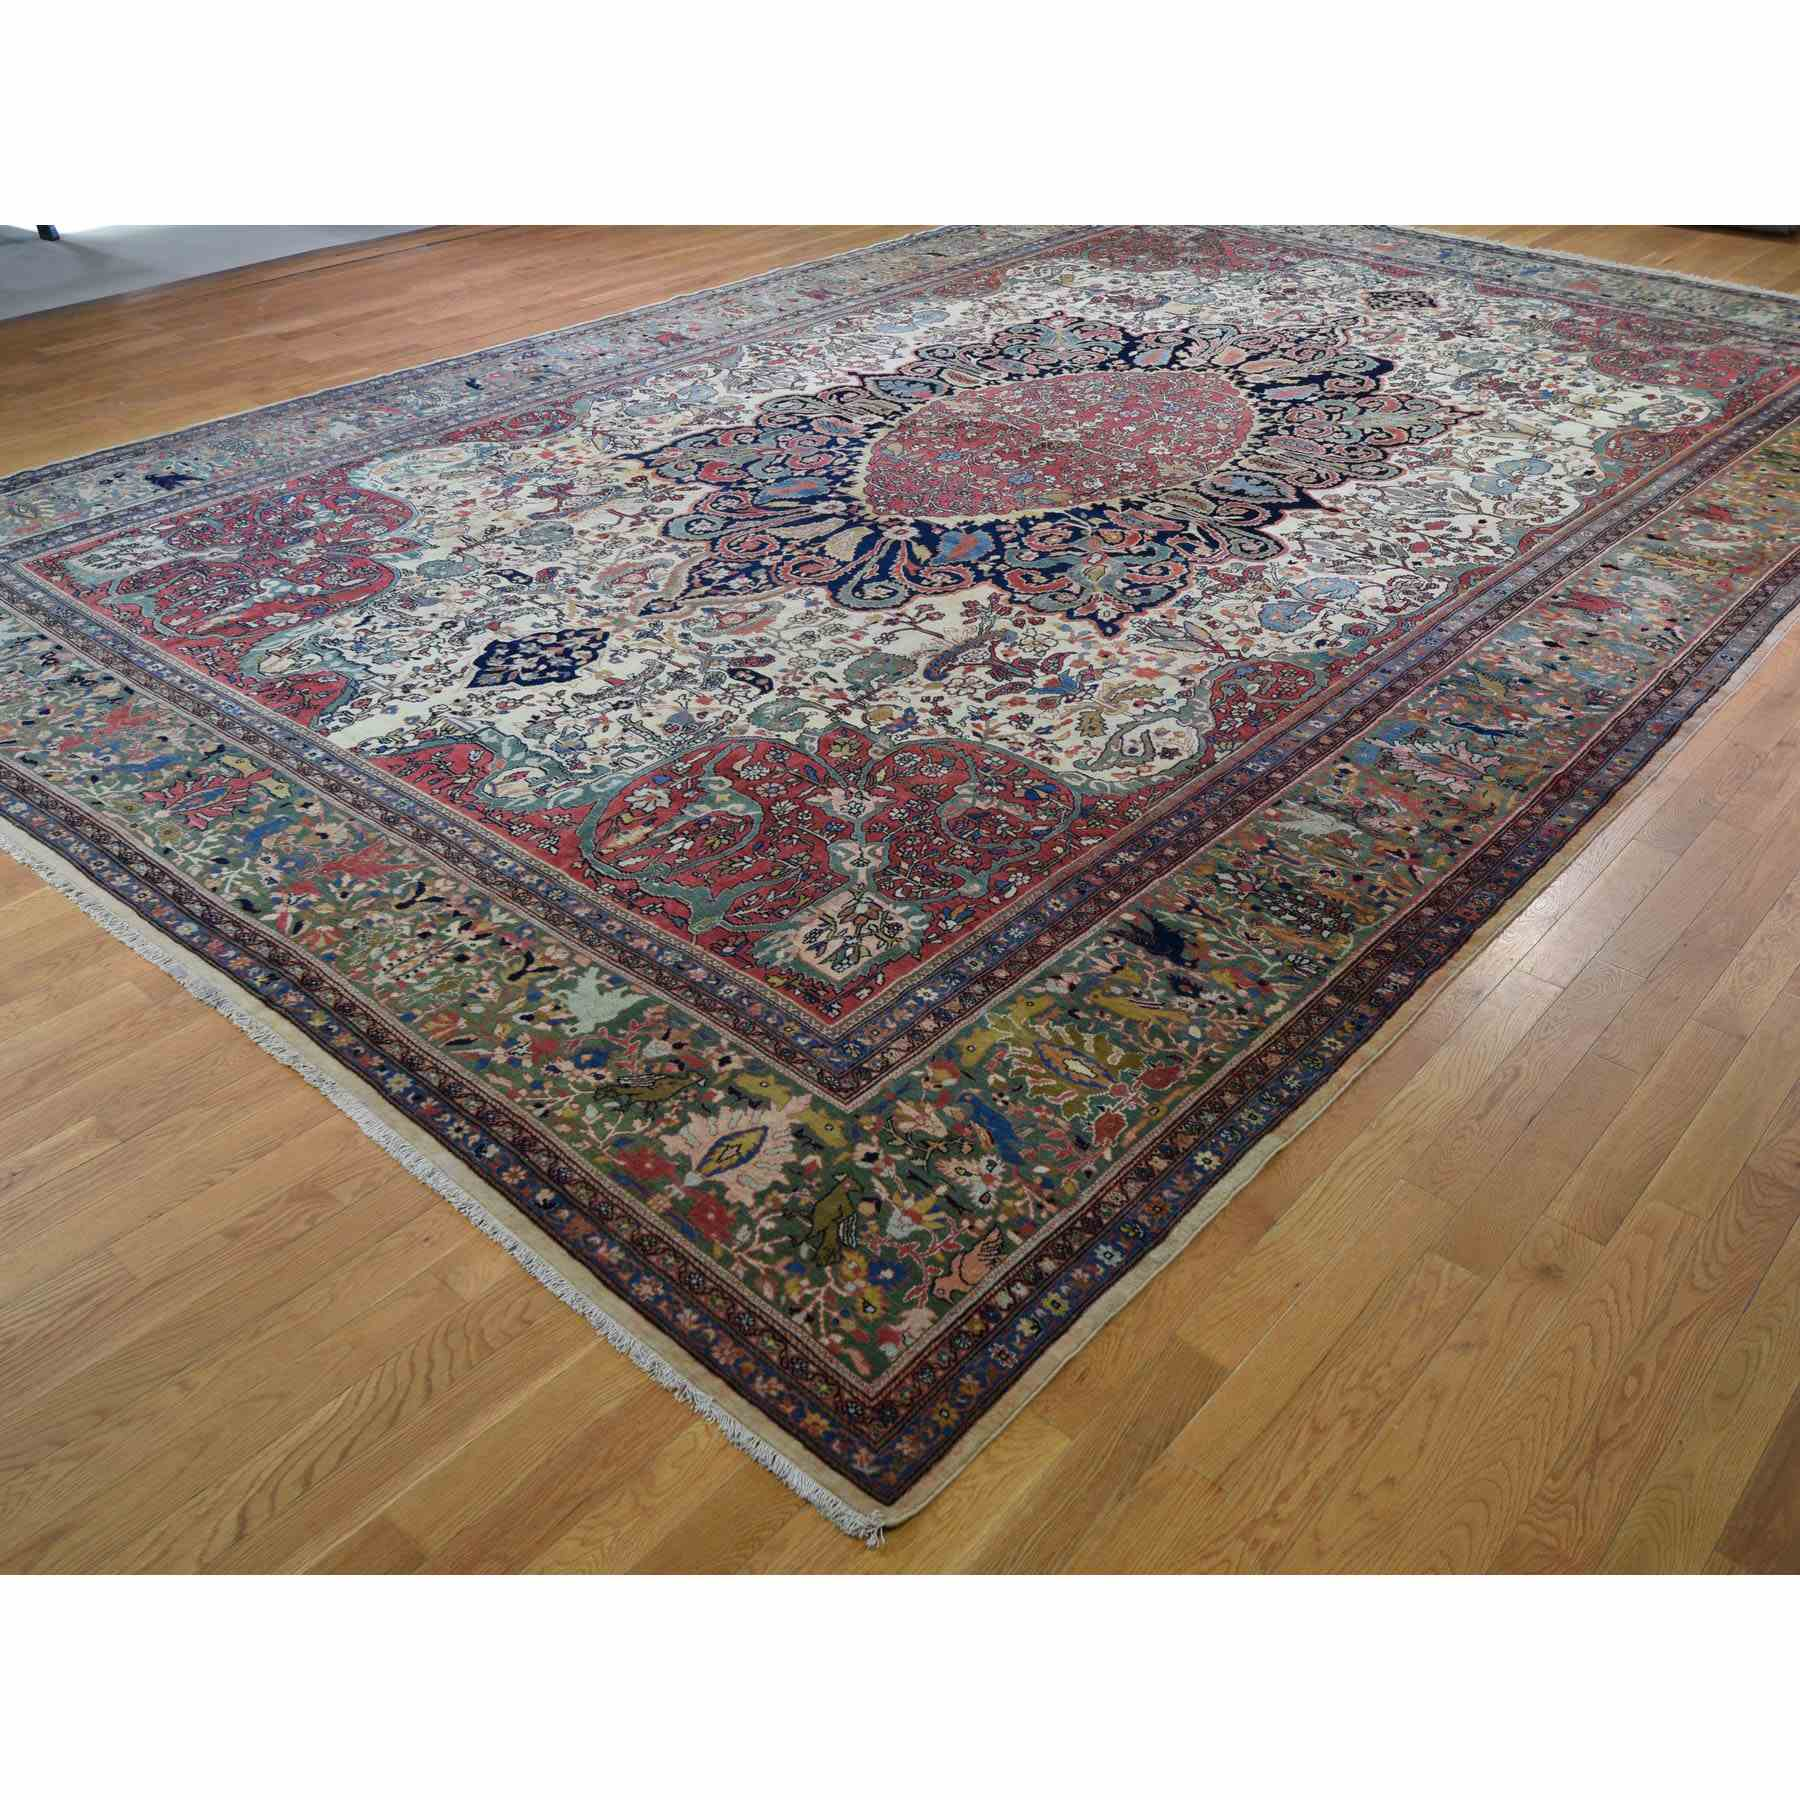 Antique-Hand-Knotted-Rug-243515